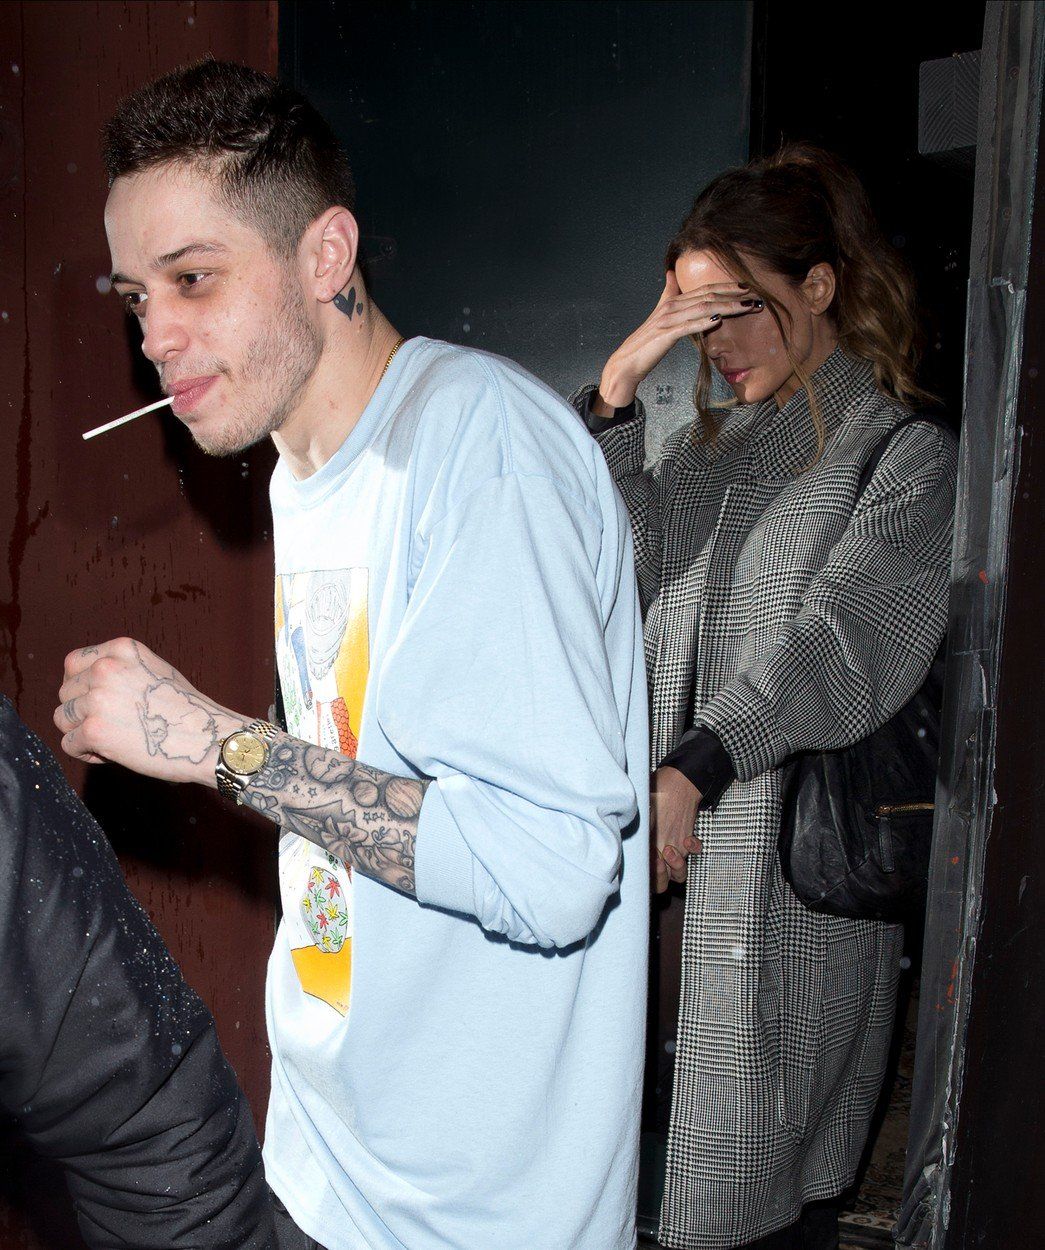 Kate Beckinsale holds hands with new man Pete Davidson as they left the 'LAGO' bar in Los Angeles, CA Pete was recently dating Ariana Grande and had a terrible break-up when're he became suicidal. Pete seems to be back on track doing comedy shows and has recently been rumored to have been flirty with the British stunner and tonight they put the rumors to rest and showed their affection to each other for the world to see. 02 Feb 2019, Image: 411753515, License: Rights-managed, Restrictions: World Rights, Model Release: no, Credit line: Profimedia, Mega Agency